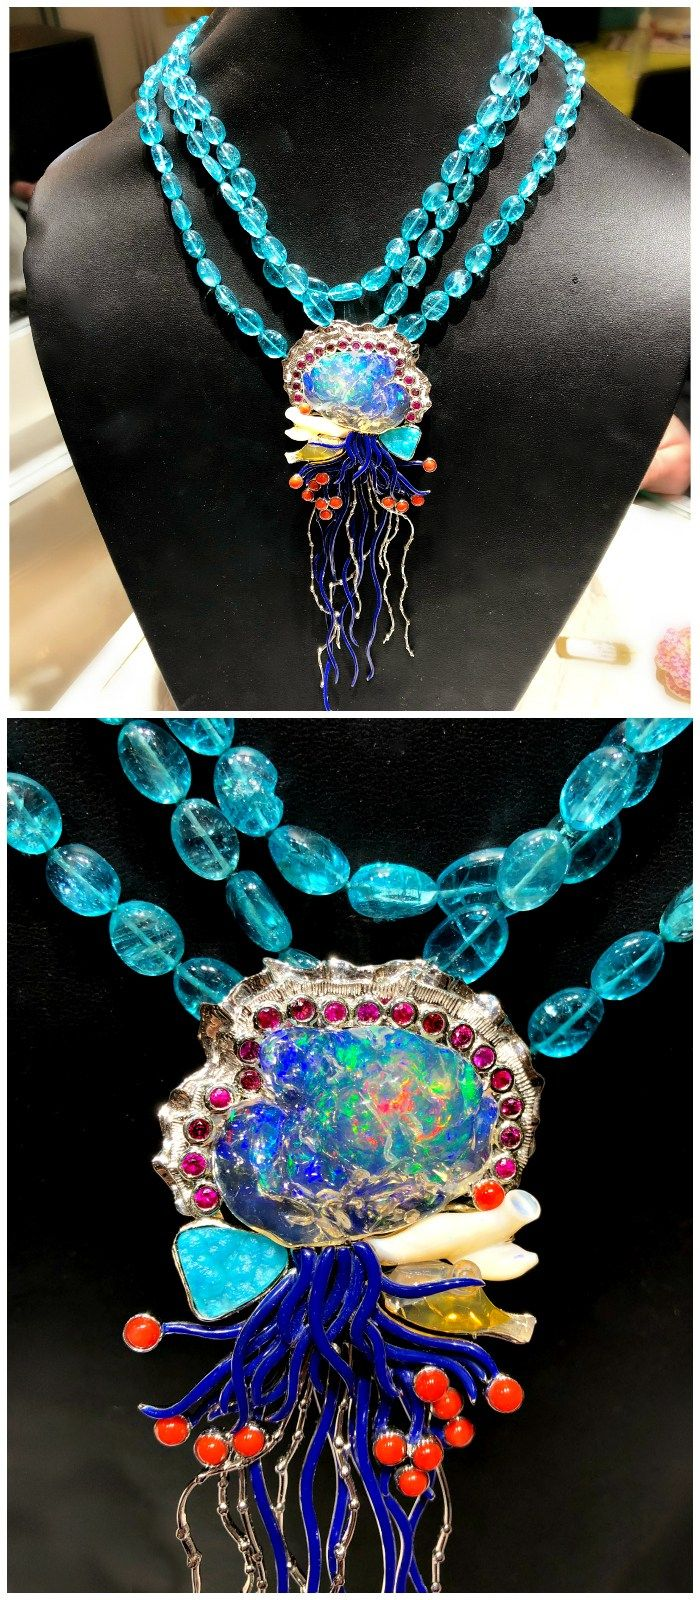 This Paula Crevoshay necklace depicts a beautiful Portuguese Man o' War jell...